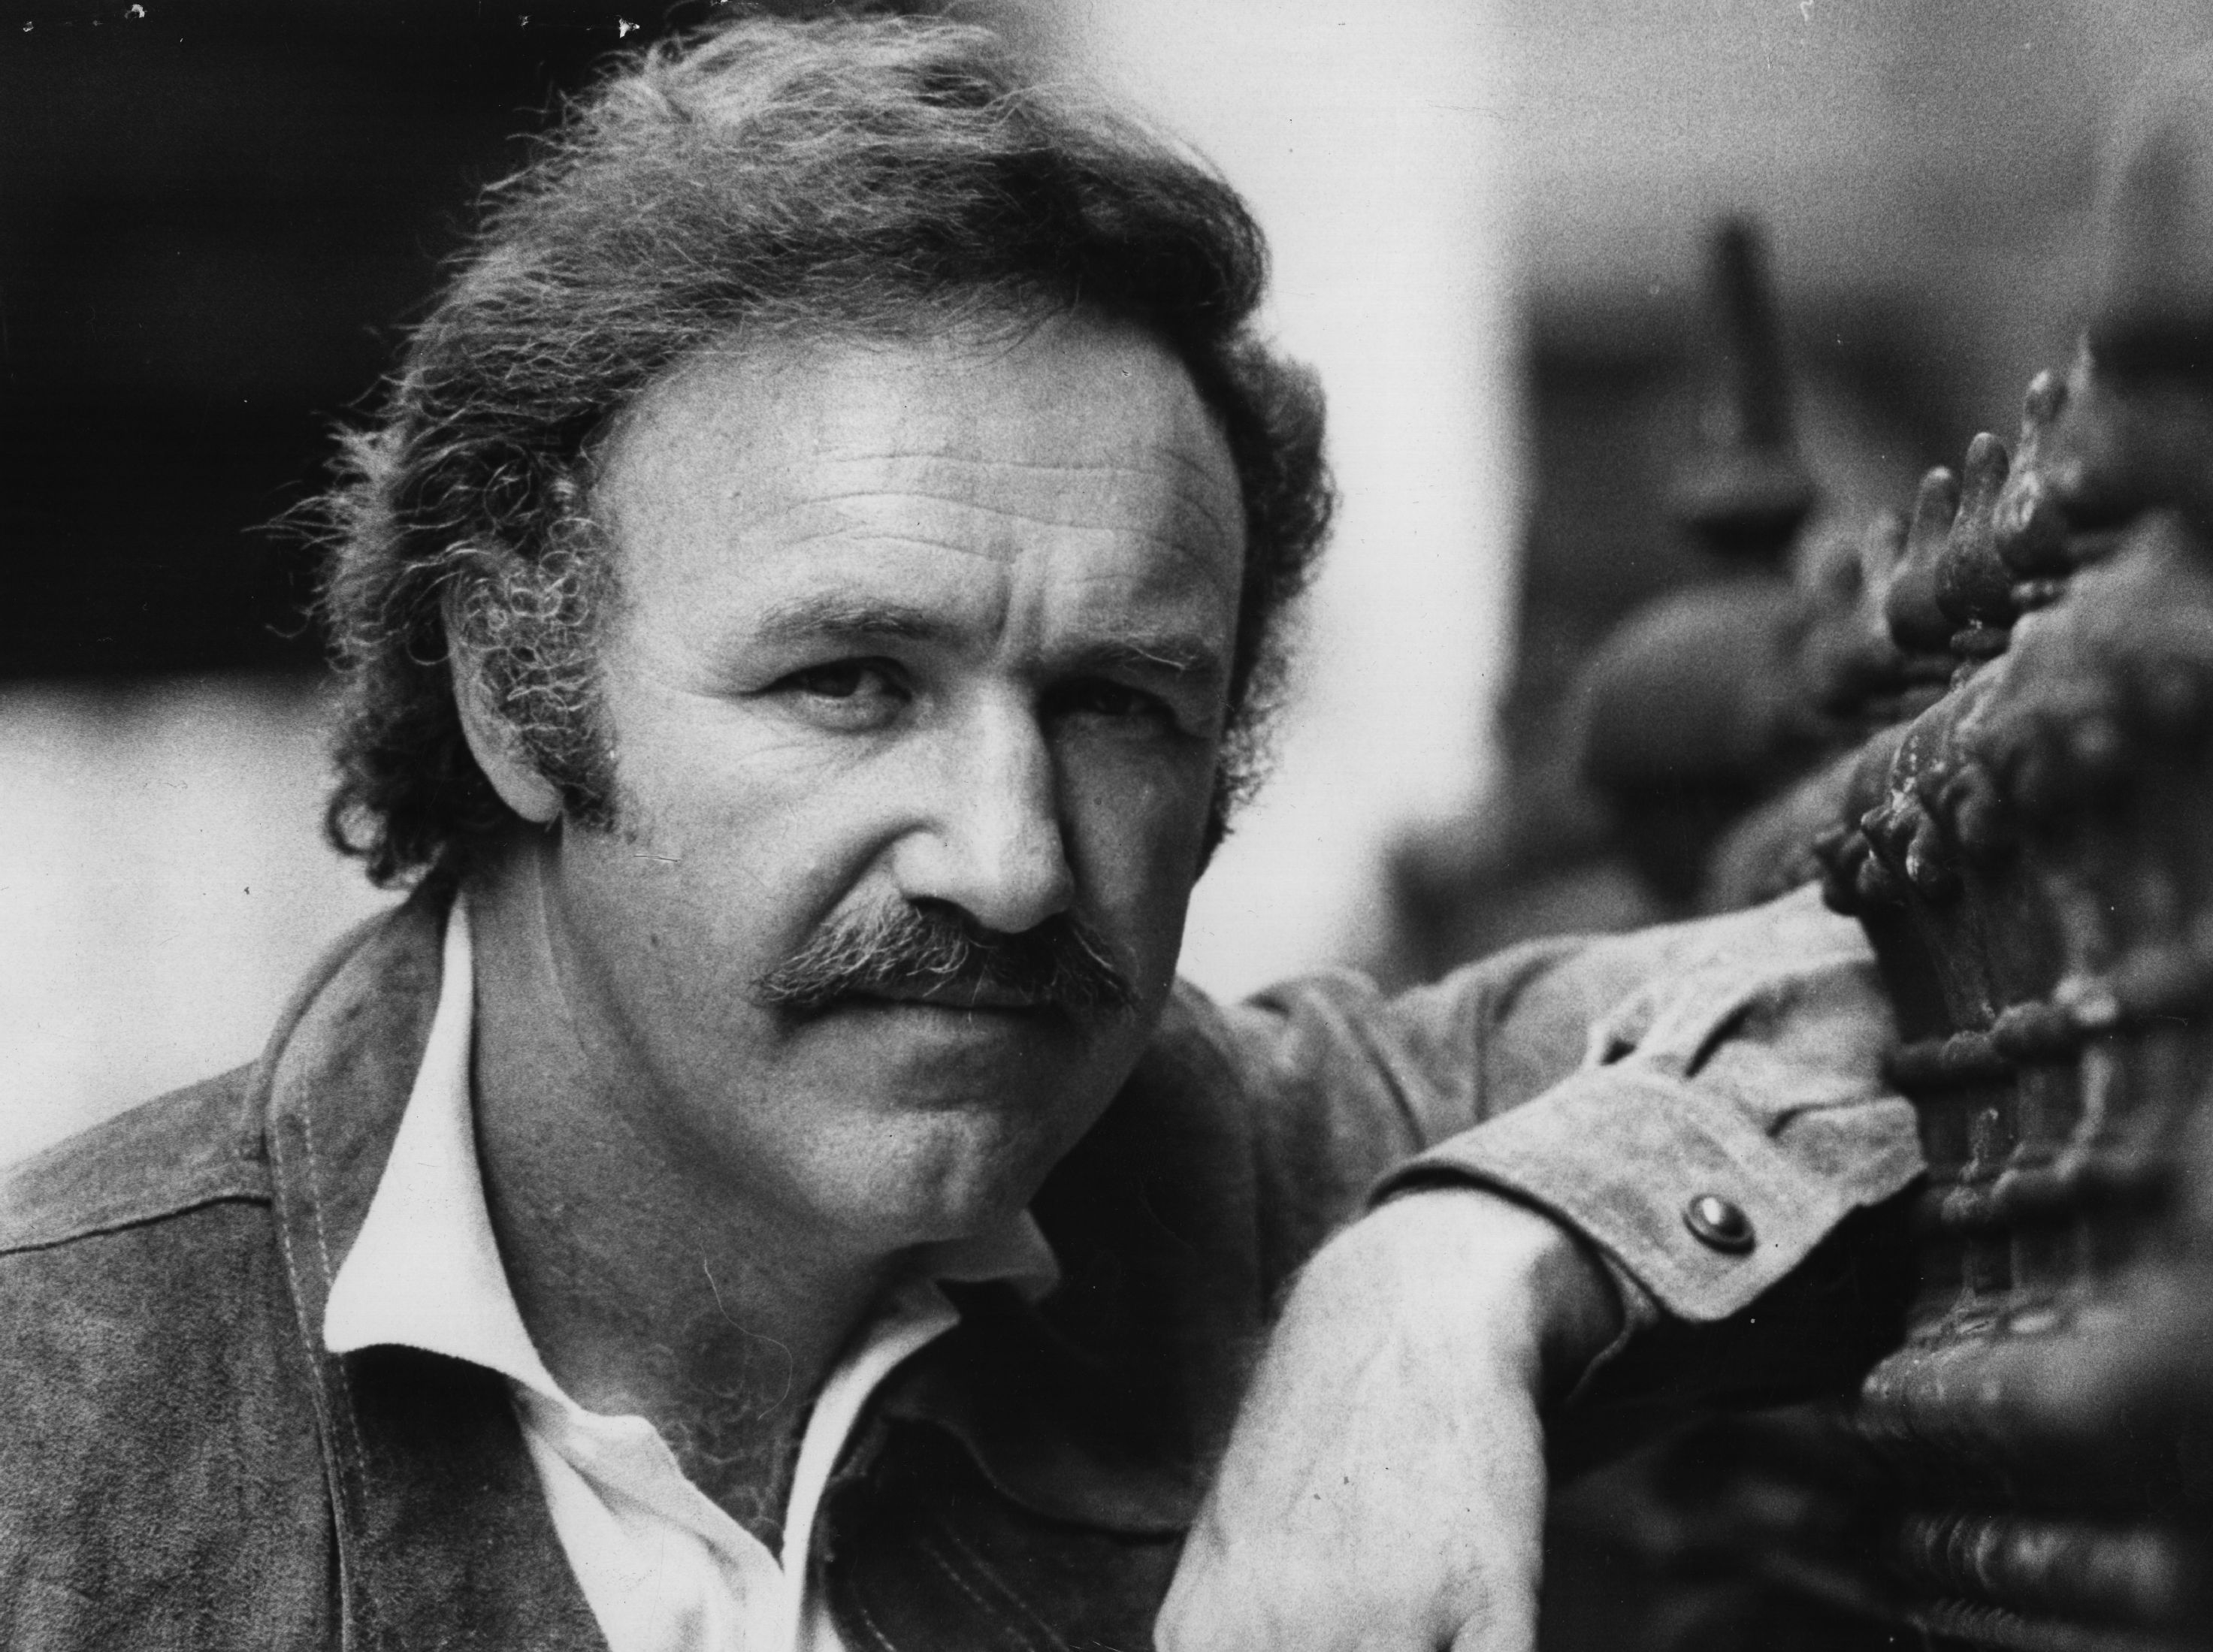 Gene Hackman in London, England, in September 1973 | Source: Getty Images